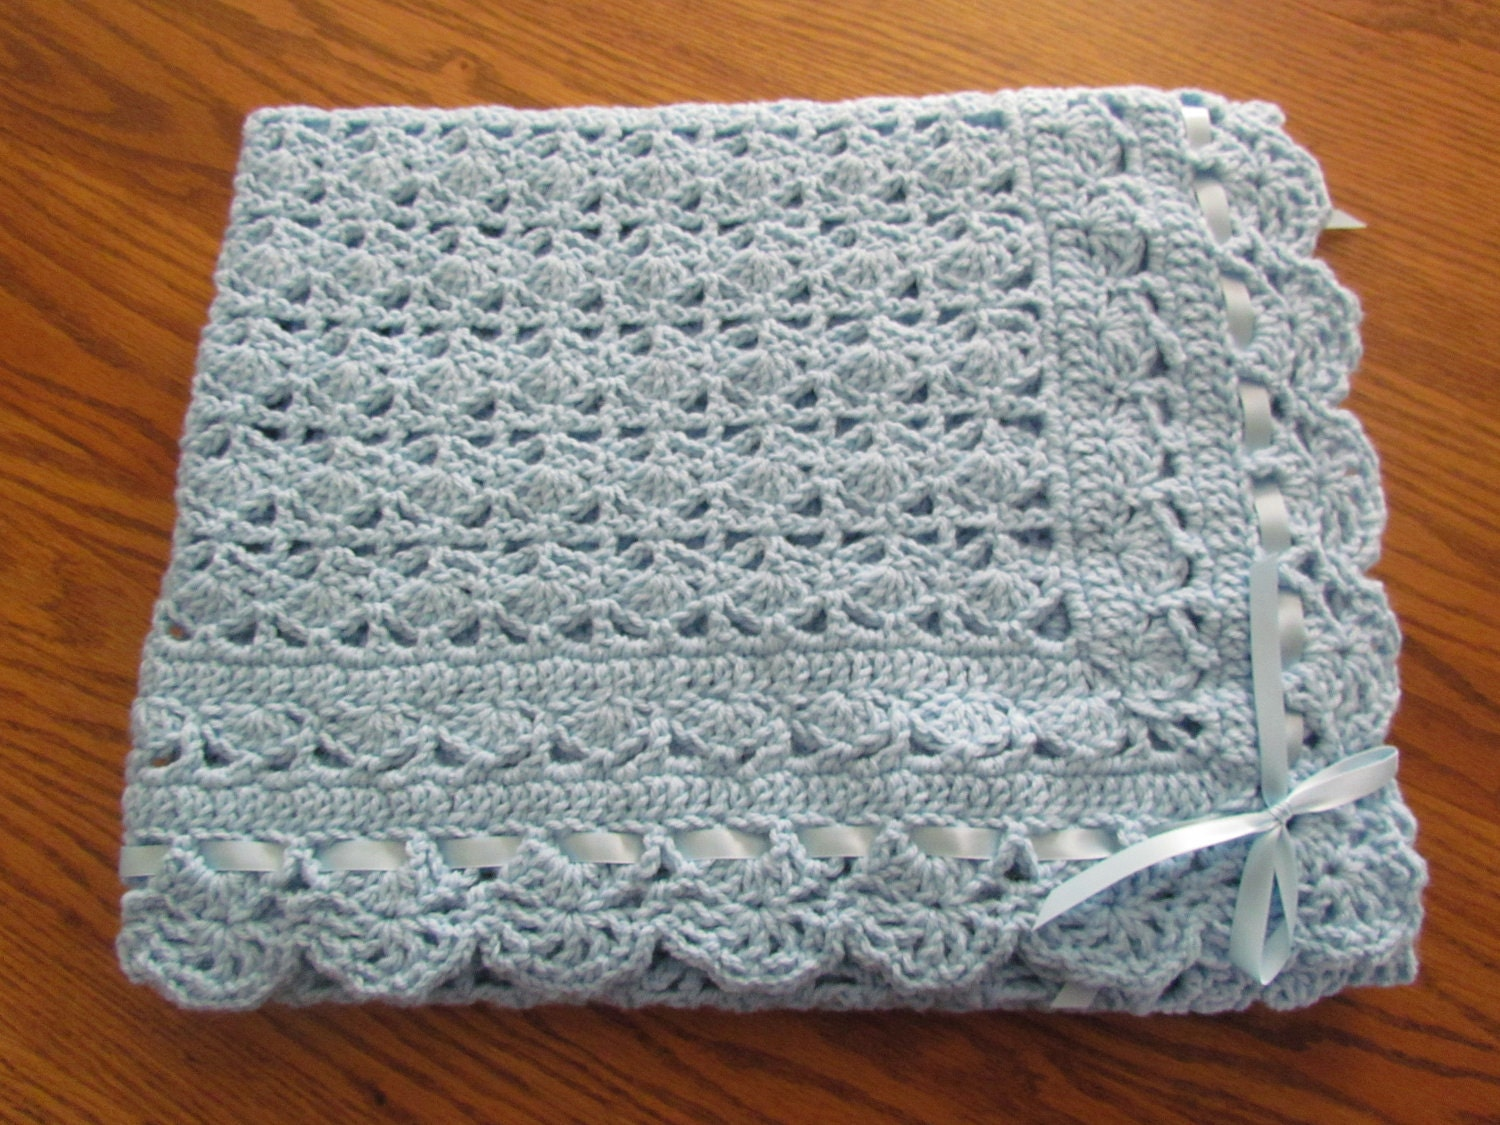 Free Crochet Pattern For Lacy Baby Blanket : BLANKET CHRISTENING CROCHET PATTERN Crochet Patterns